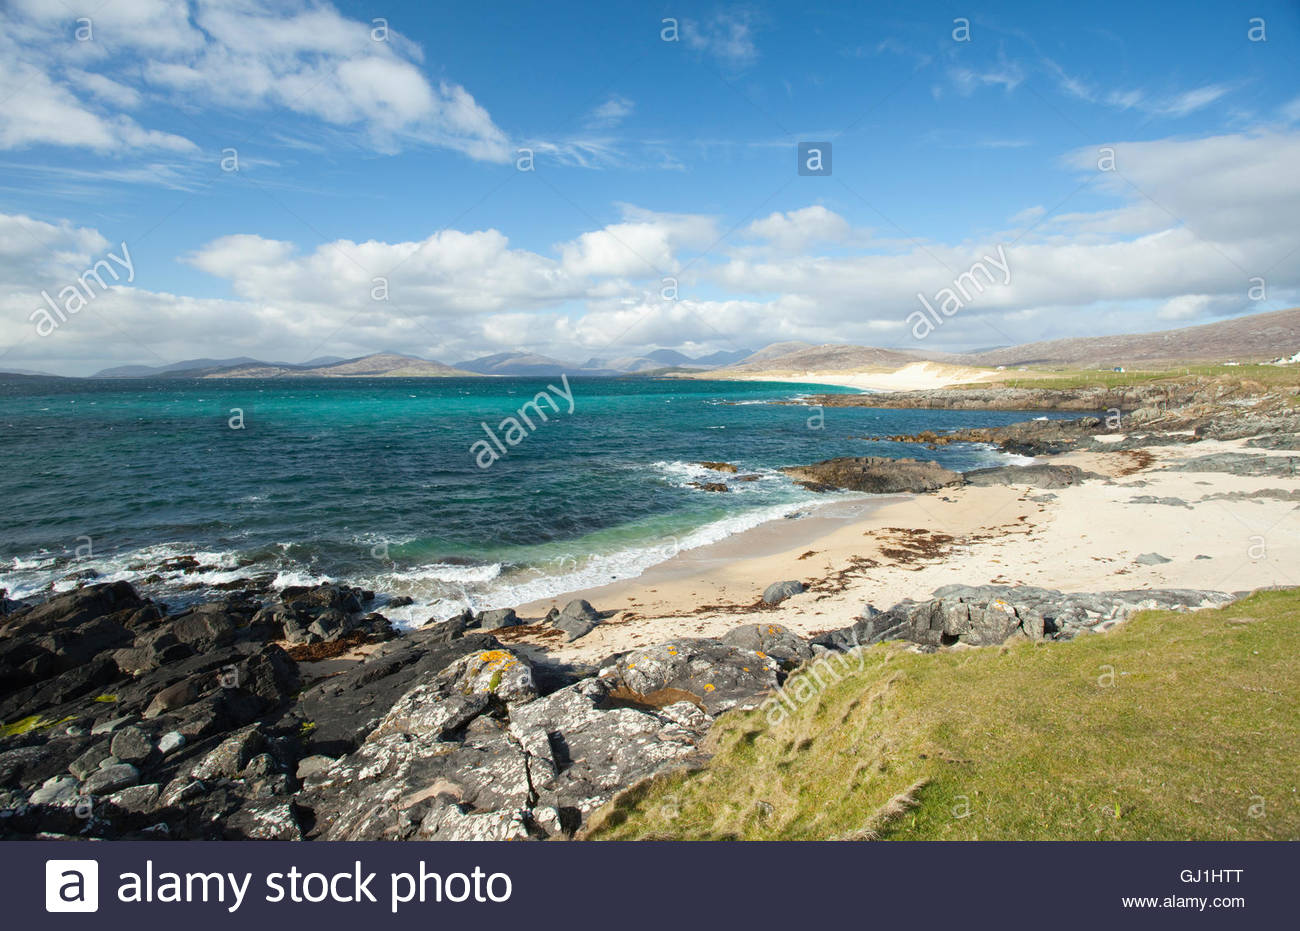 An empty white beach at Borvemore, Isle of Harris, Outer Hebrides, Scotland - Stock Image